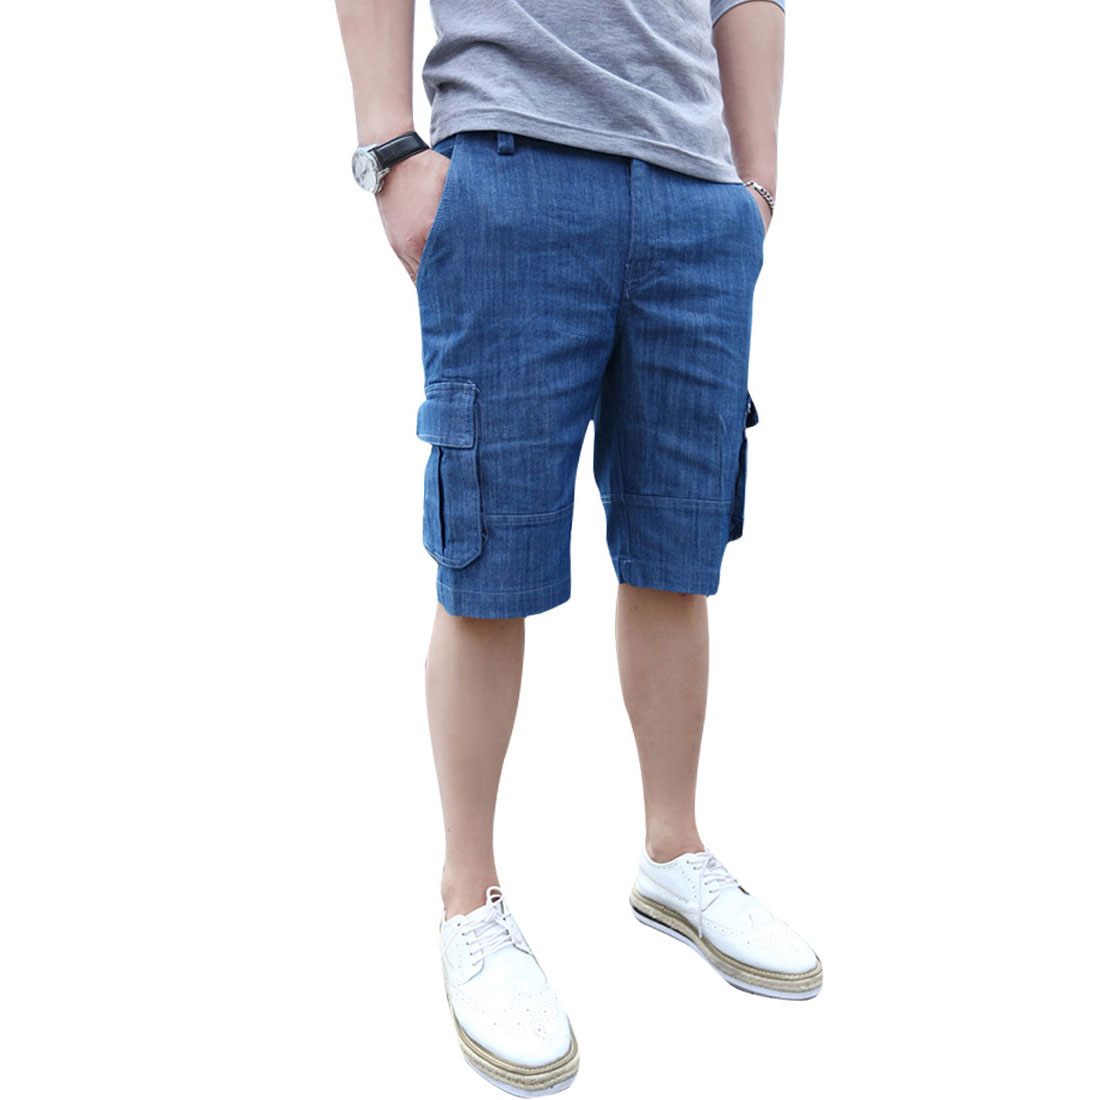 Men Casual Denim Belted Loop Hip Pockets Decor Stylish Shorts Blue W32